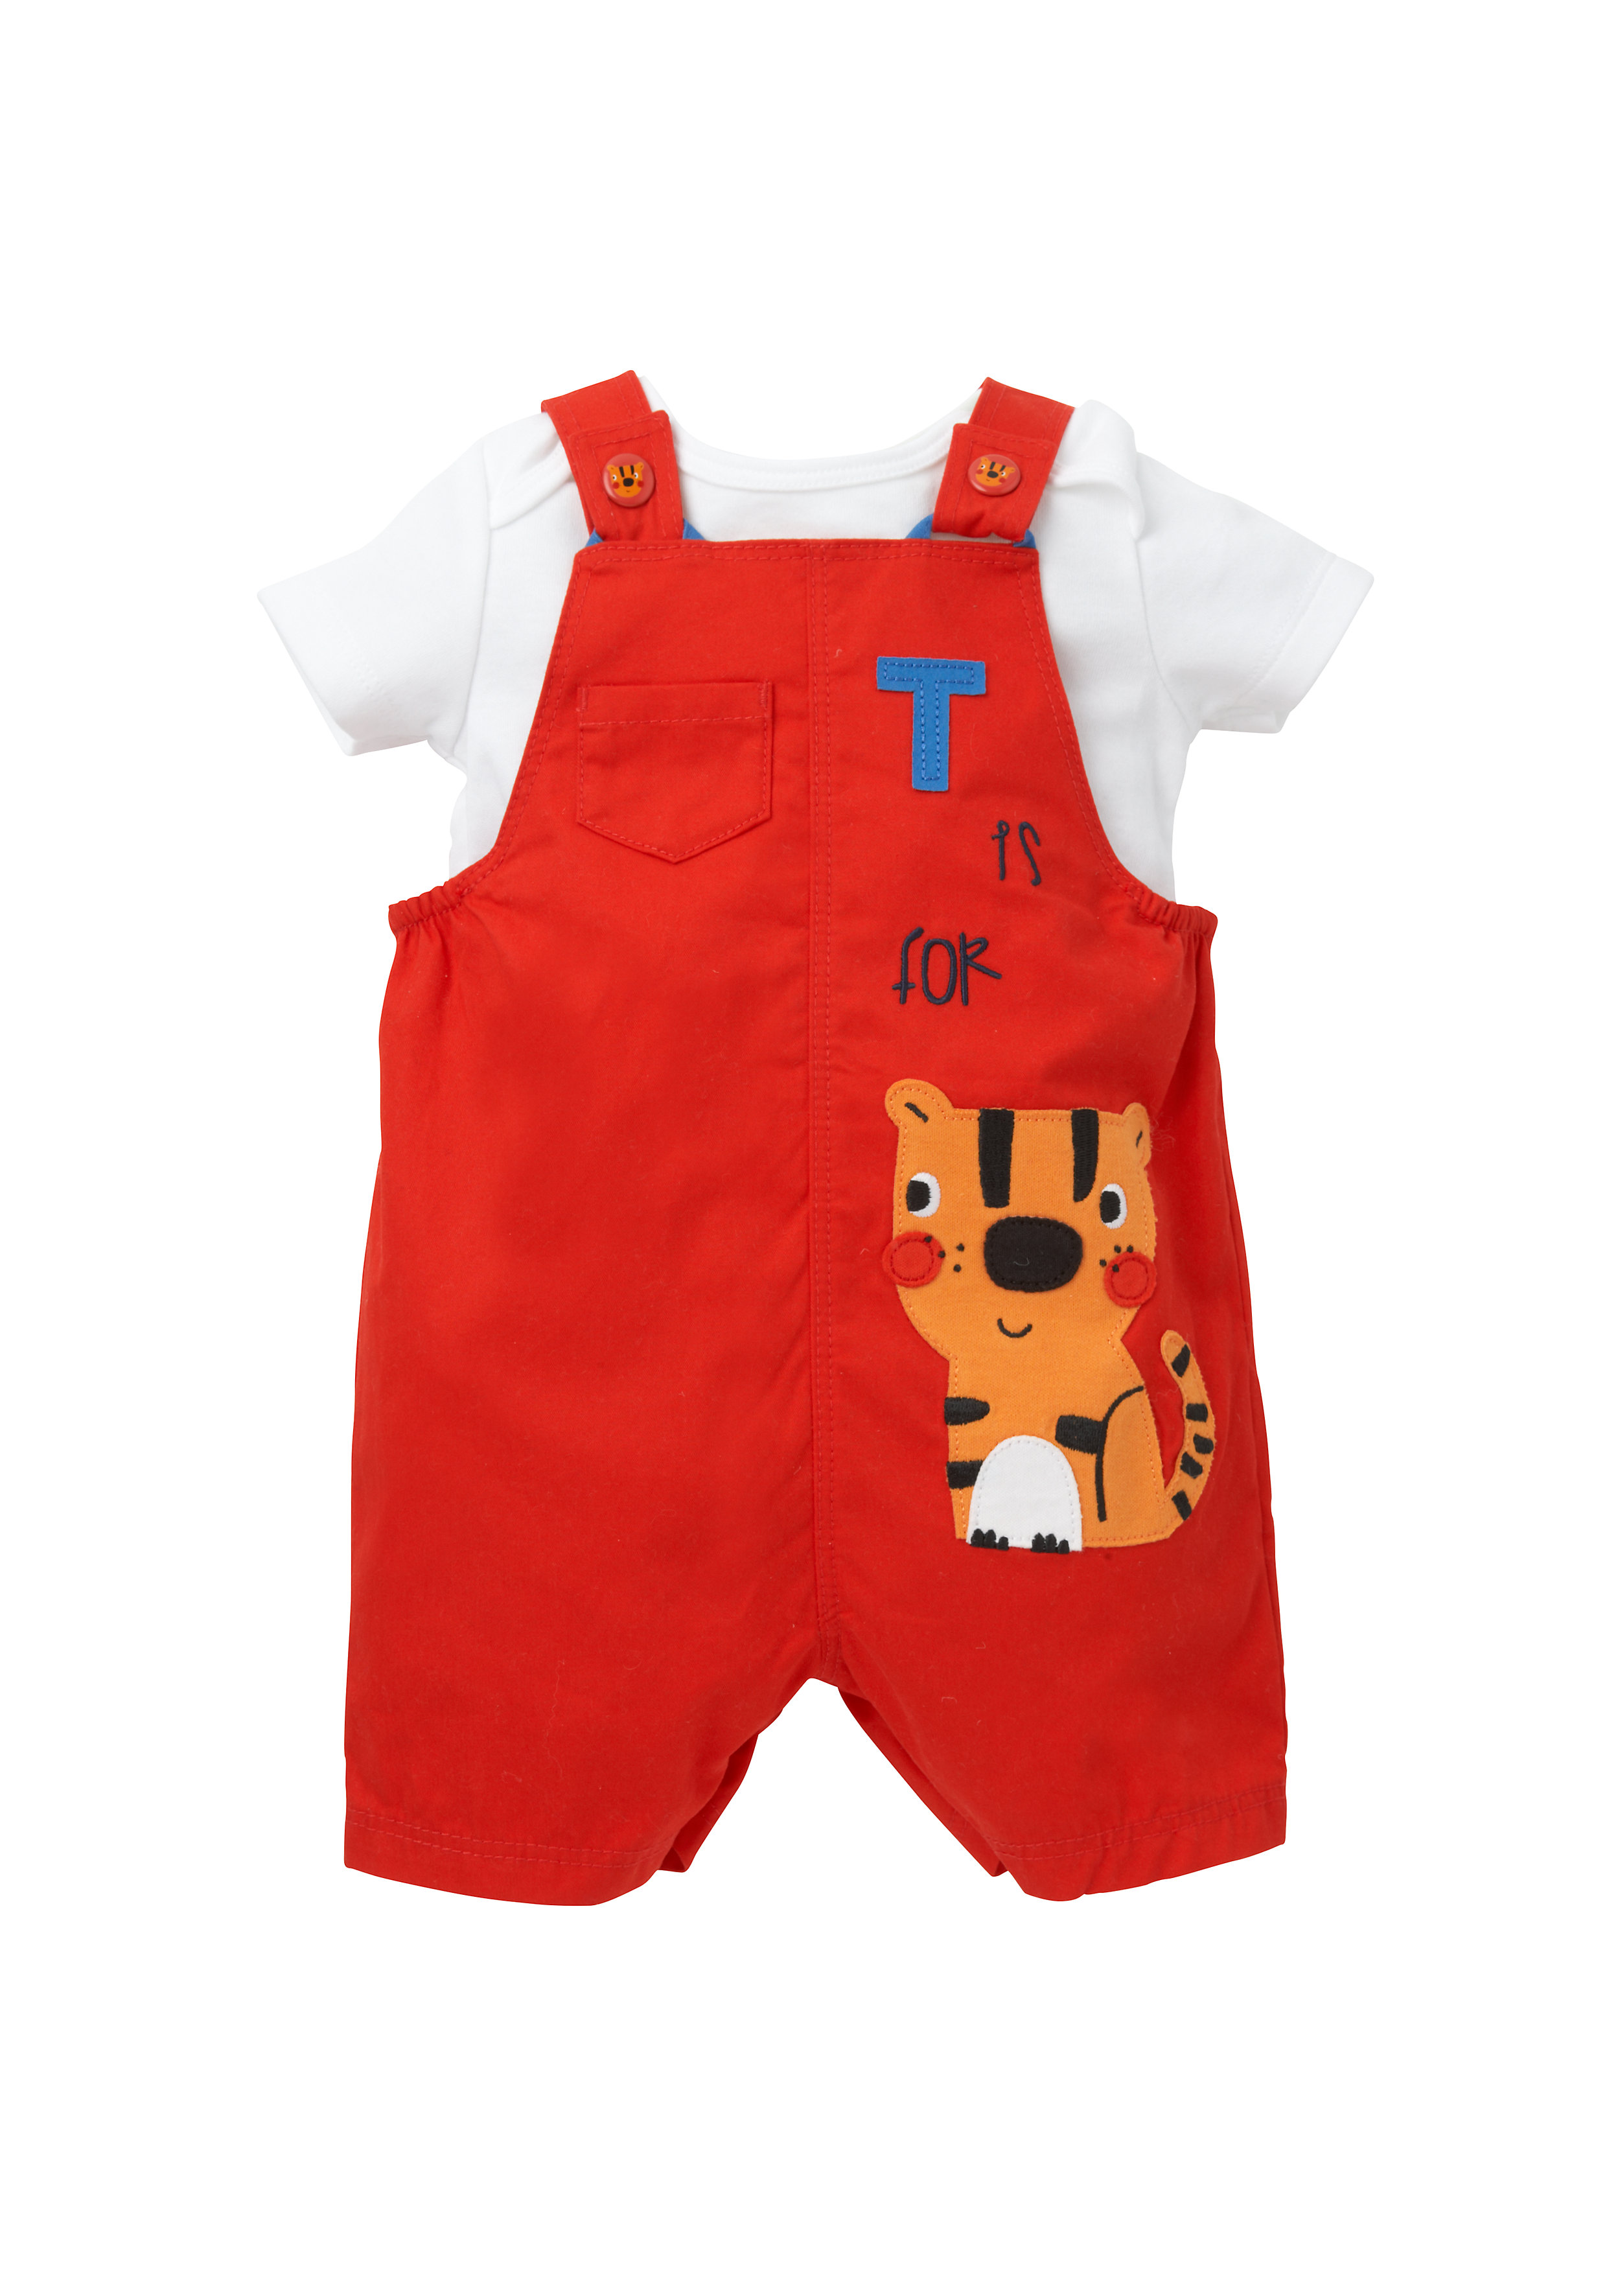 Mothercare | Boys Half Sleeves Dungaree Set Tiger Patchwork - Red